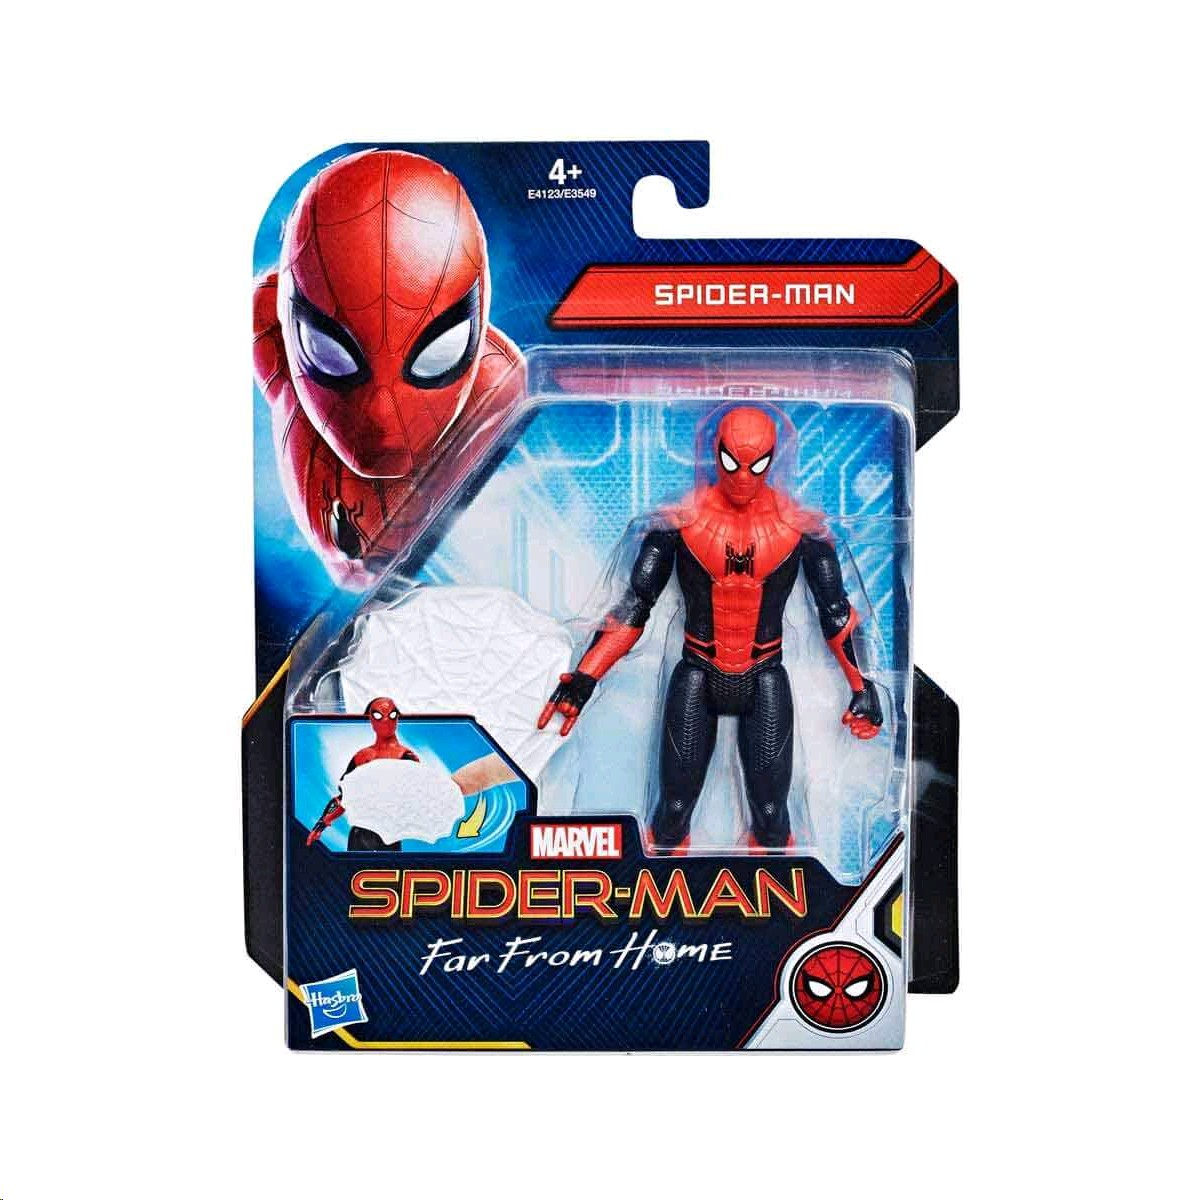 spiderman-far-from-home-figur-spin-shield